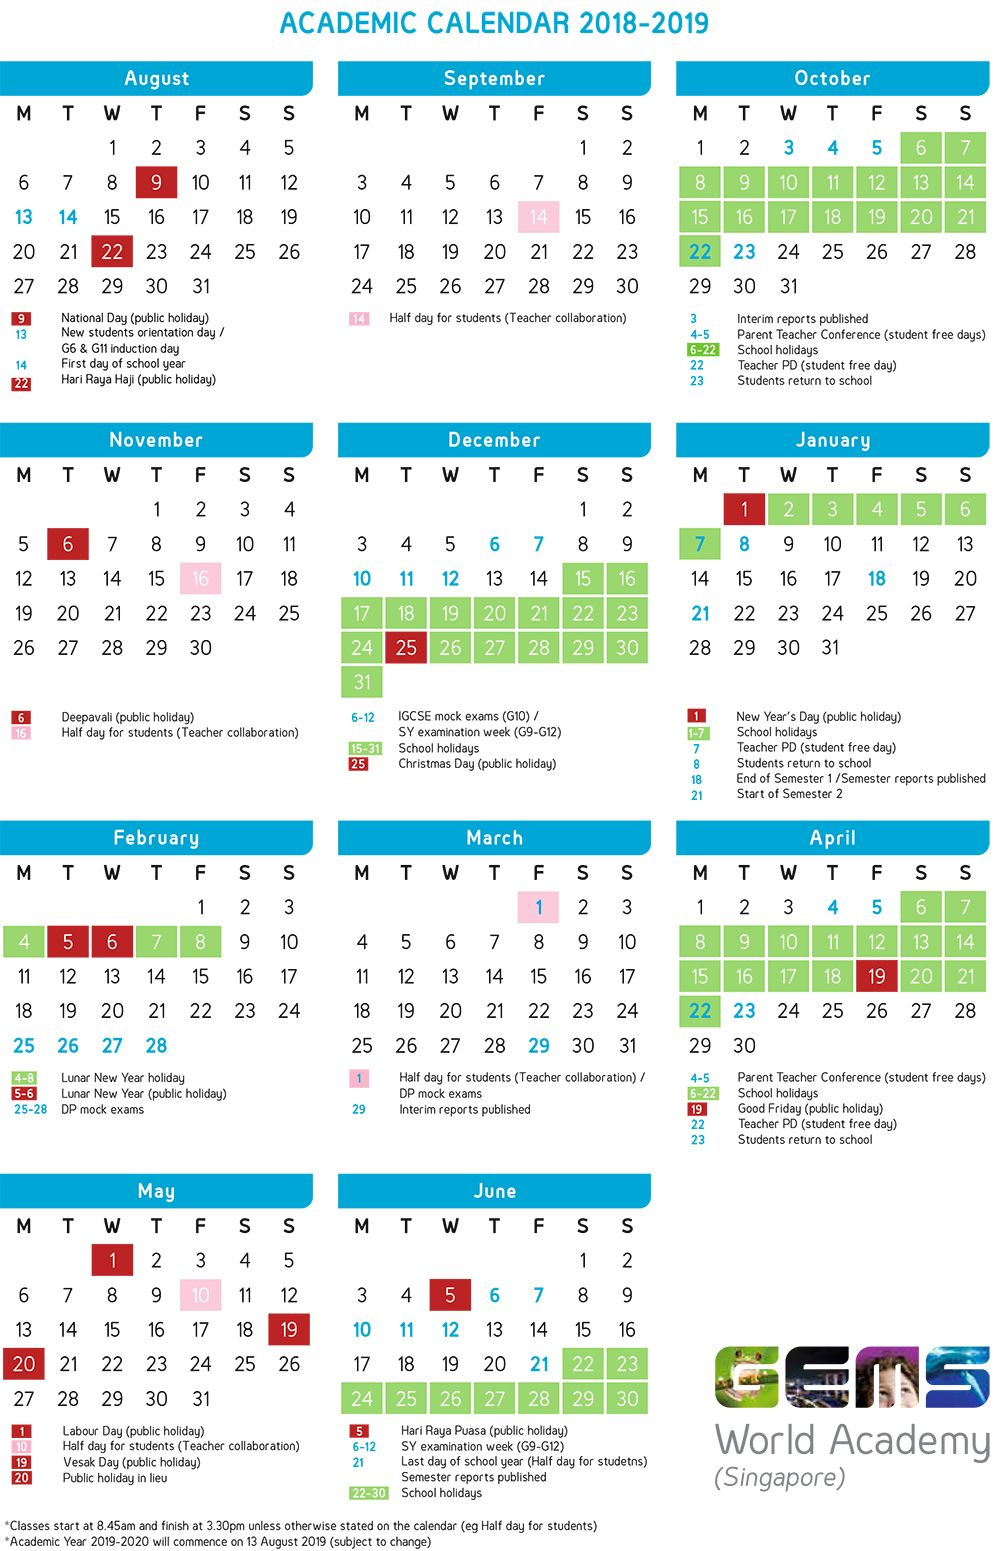 Academic Calendar | Gems World Academy (Singapore in Gems World Academy Academic Calendar